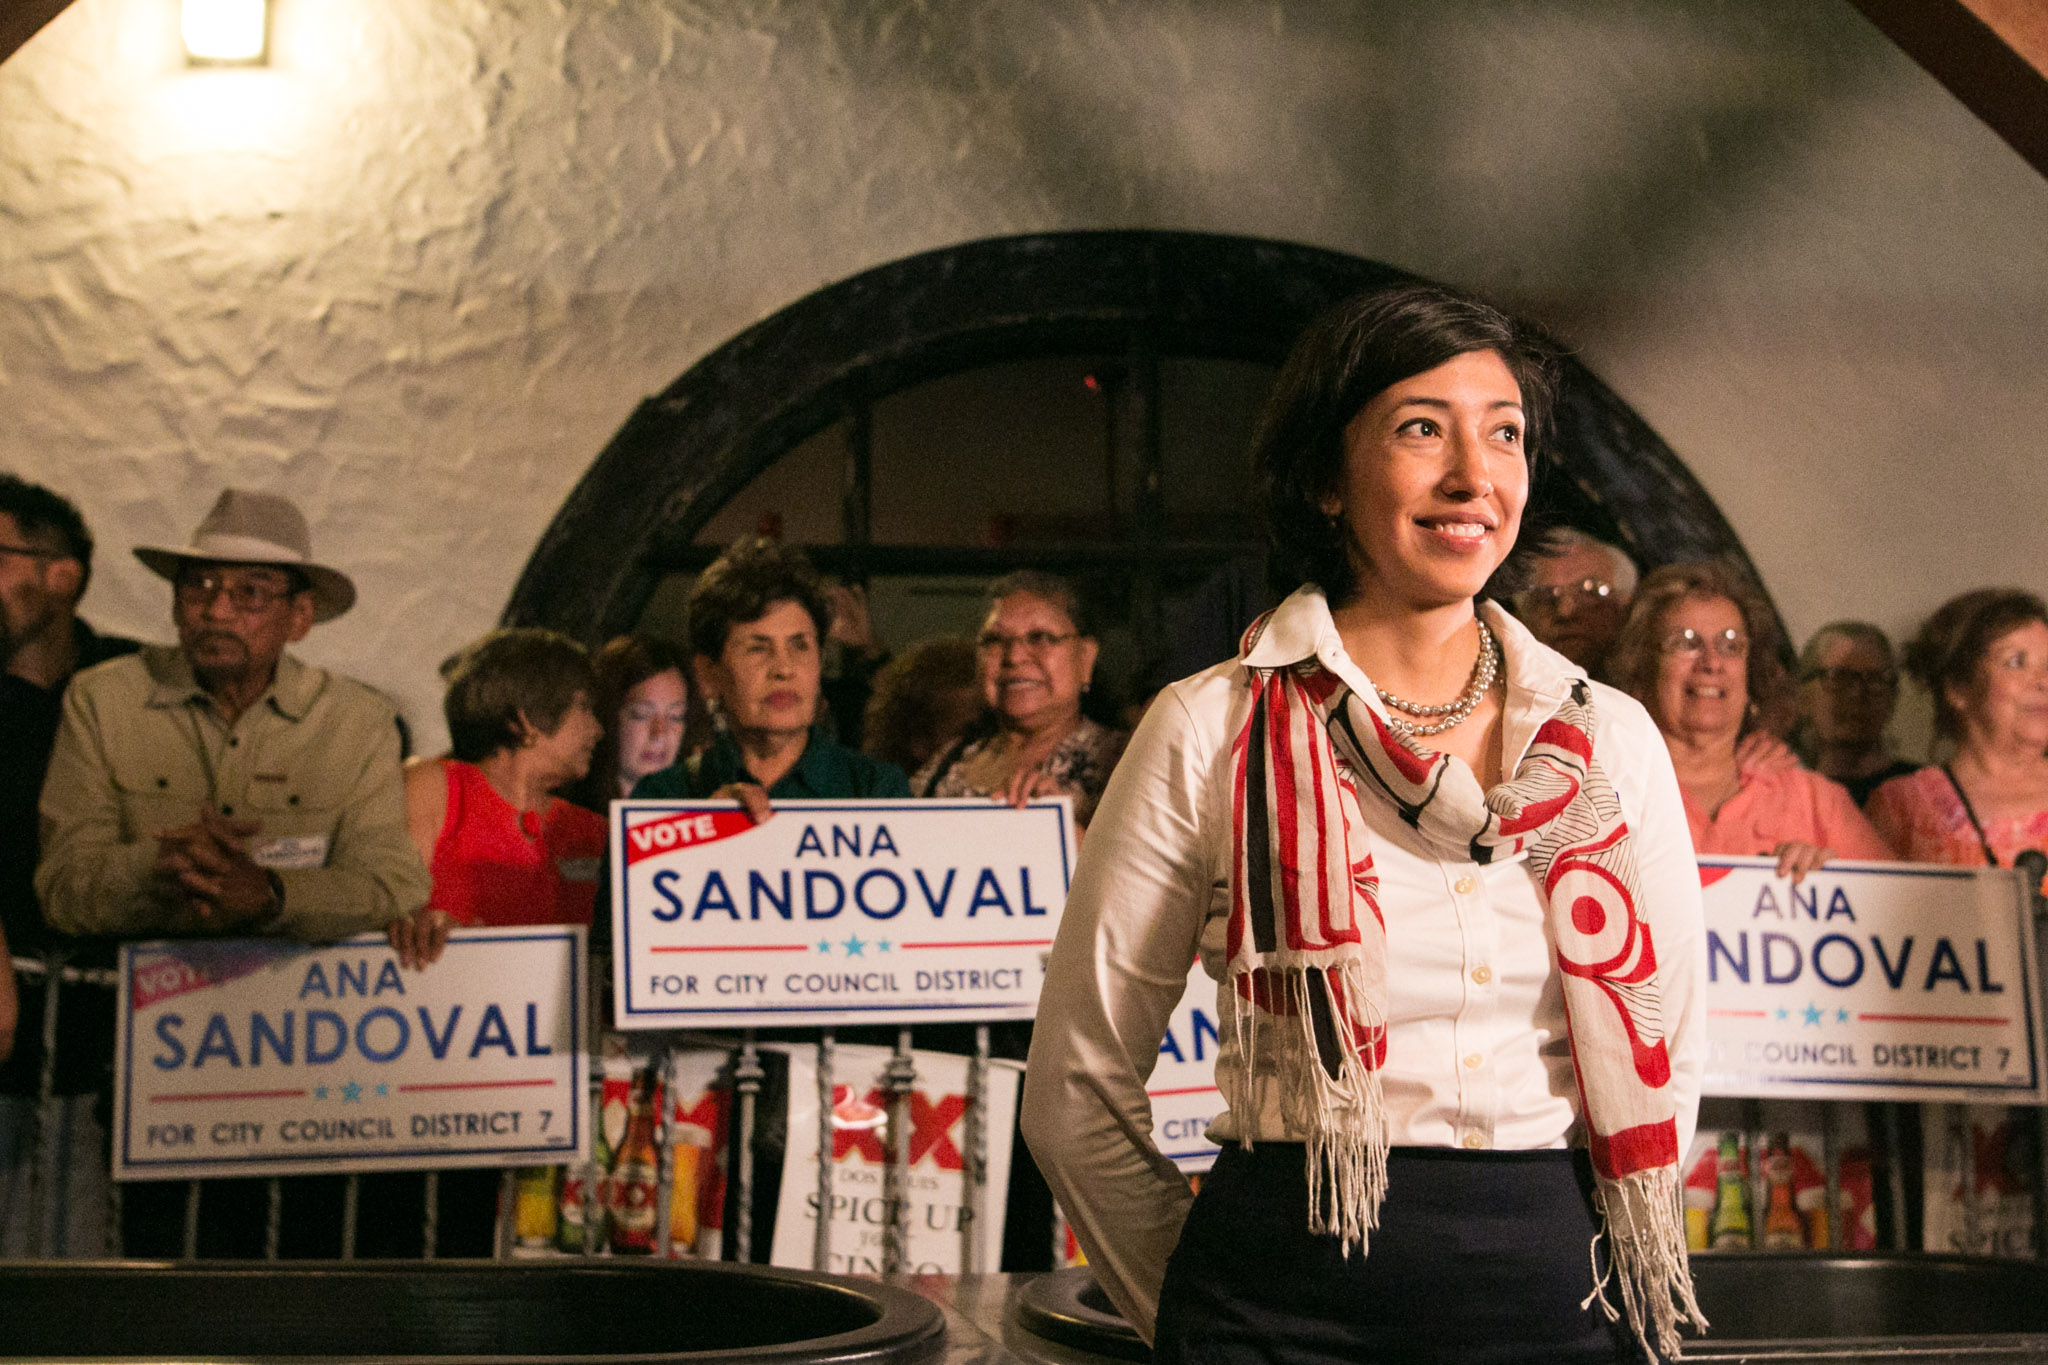 Ana Sandoval received more than 50% of the vote in the 2017 general election.